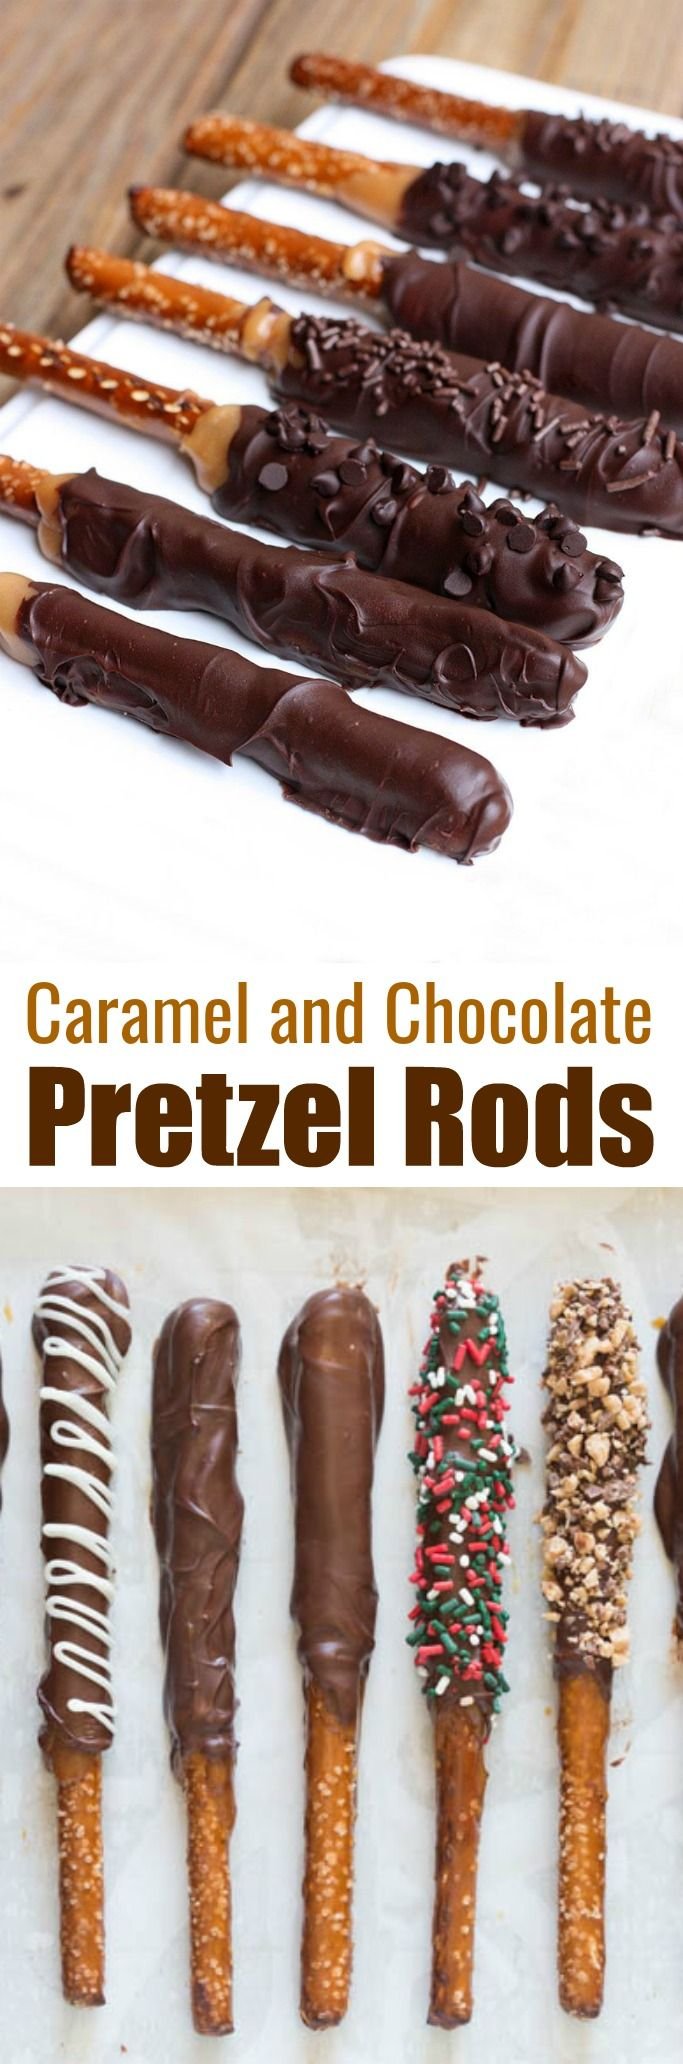 Caramel and Chocolate Dipped Pretzel Rods make the BEST holiday treat and gift for neighbors, teachers and friends at Christmas or any time of year! Made with homemade caramel, semi-sweet chocolate and your favorite toppings. | tastesbetterfromscratch.com via @betrfromscratch